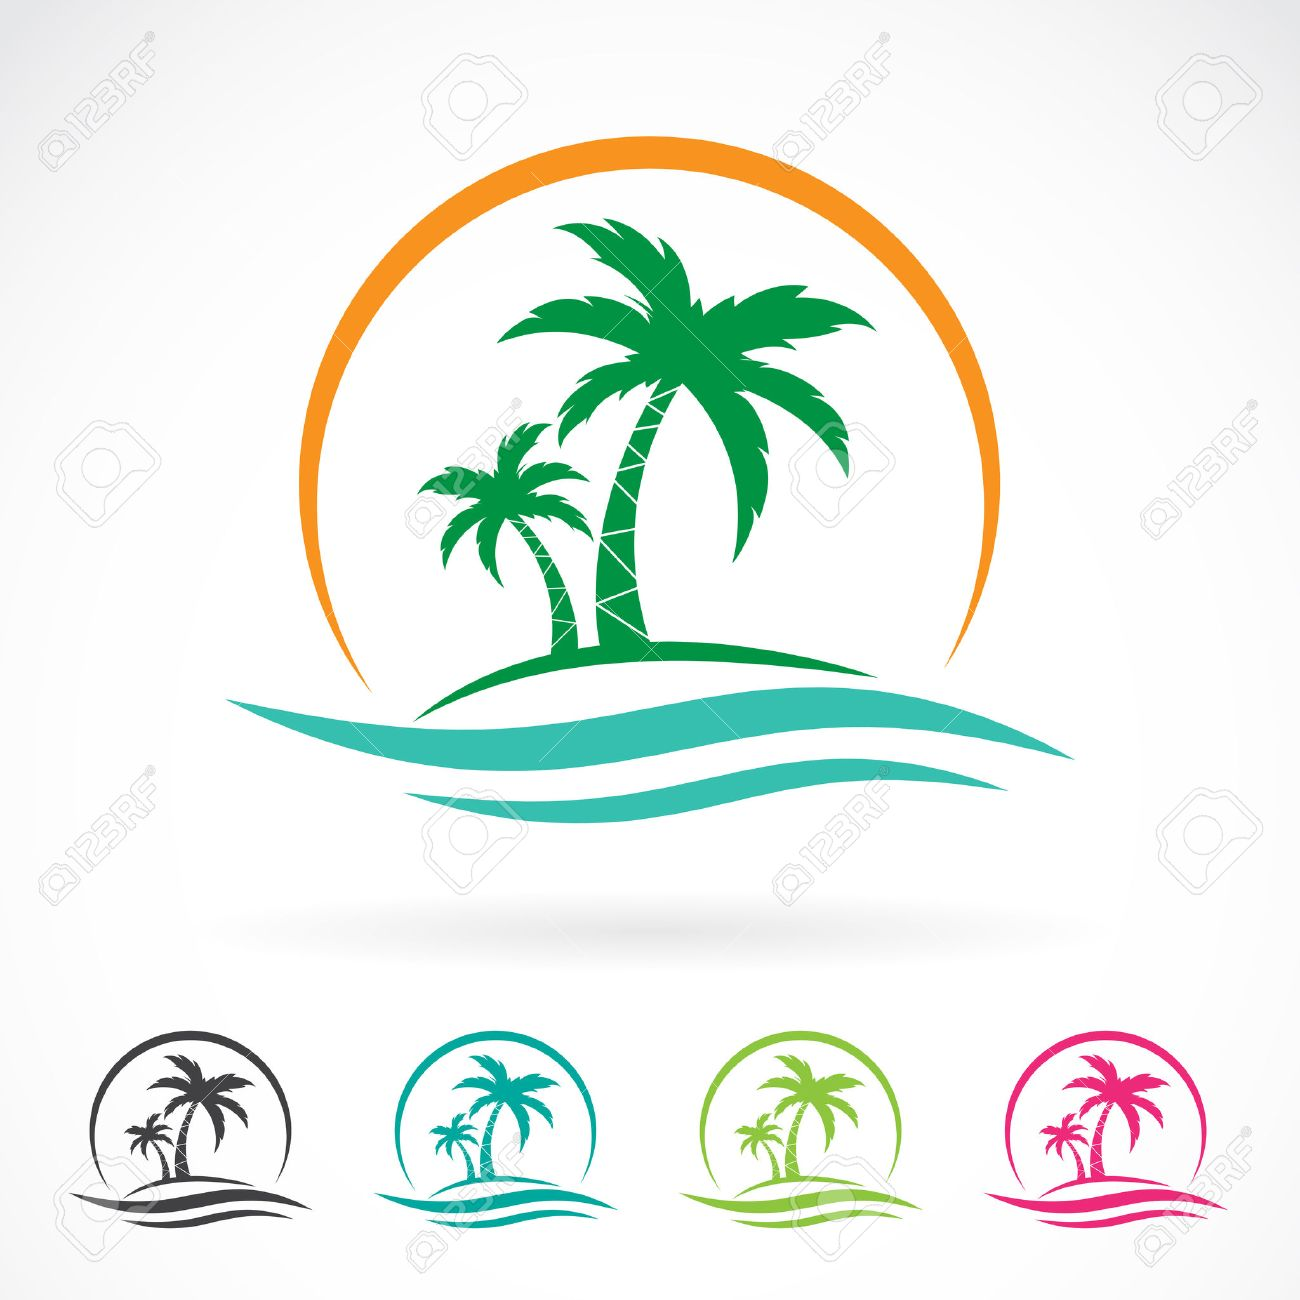 Vector image of an palm tropical tree icon on white background. logo design - 55619776